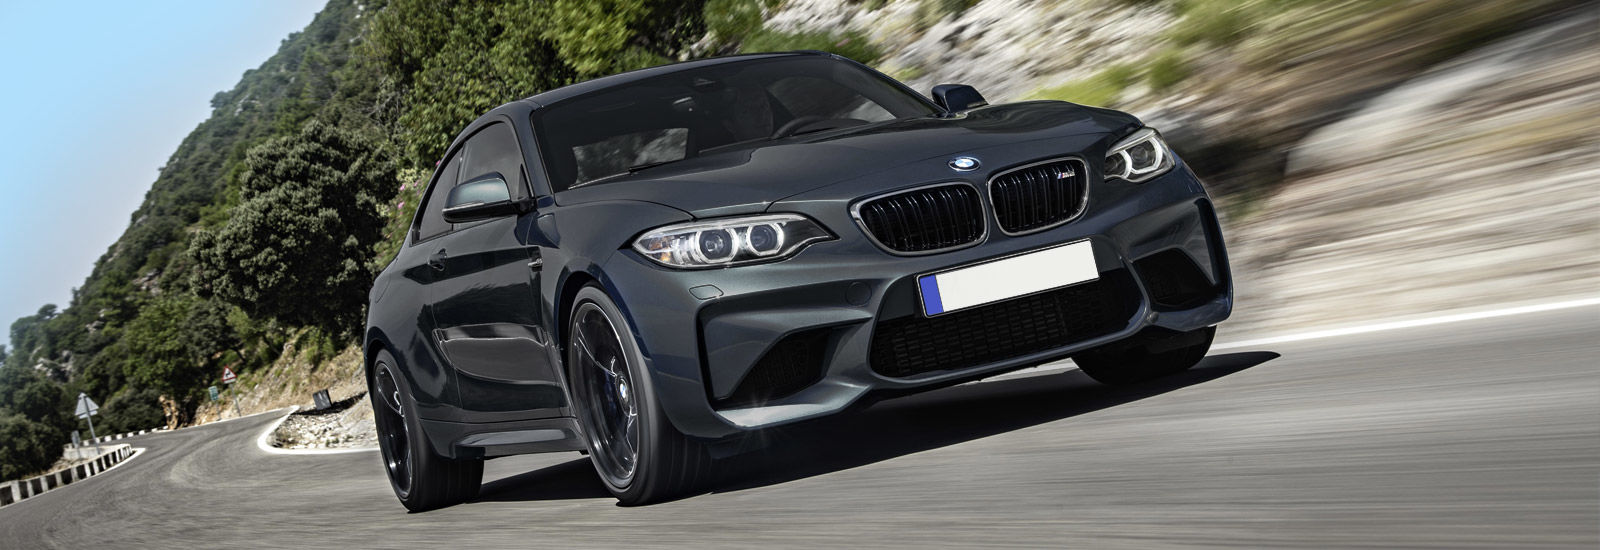 2016 BMW M2 release date